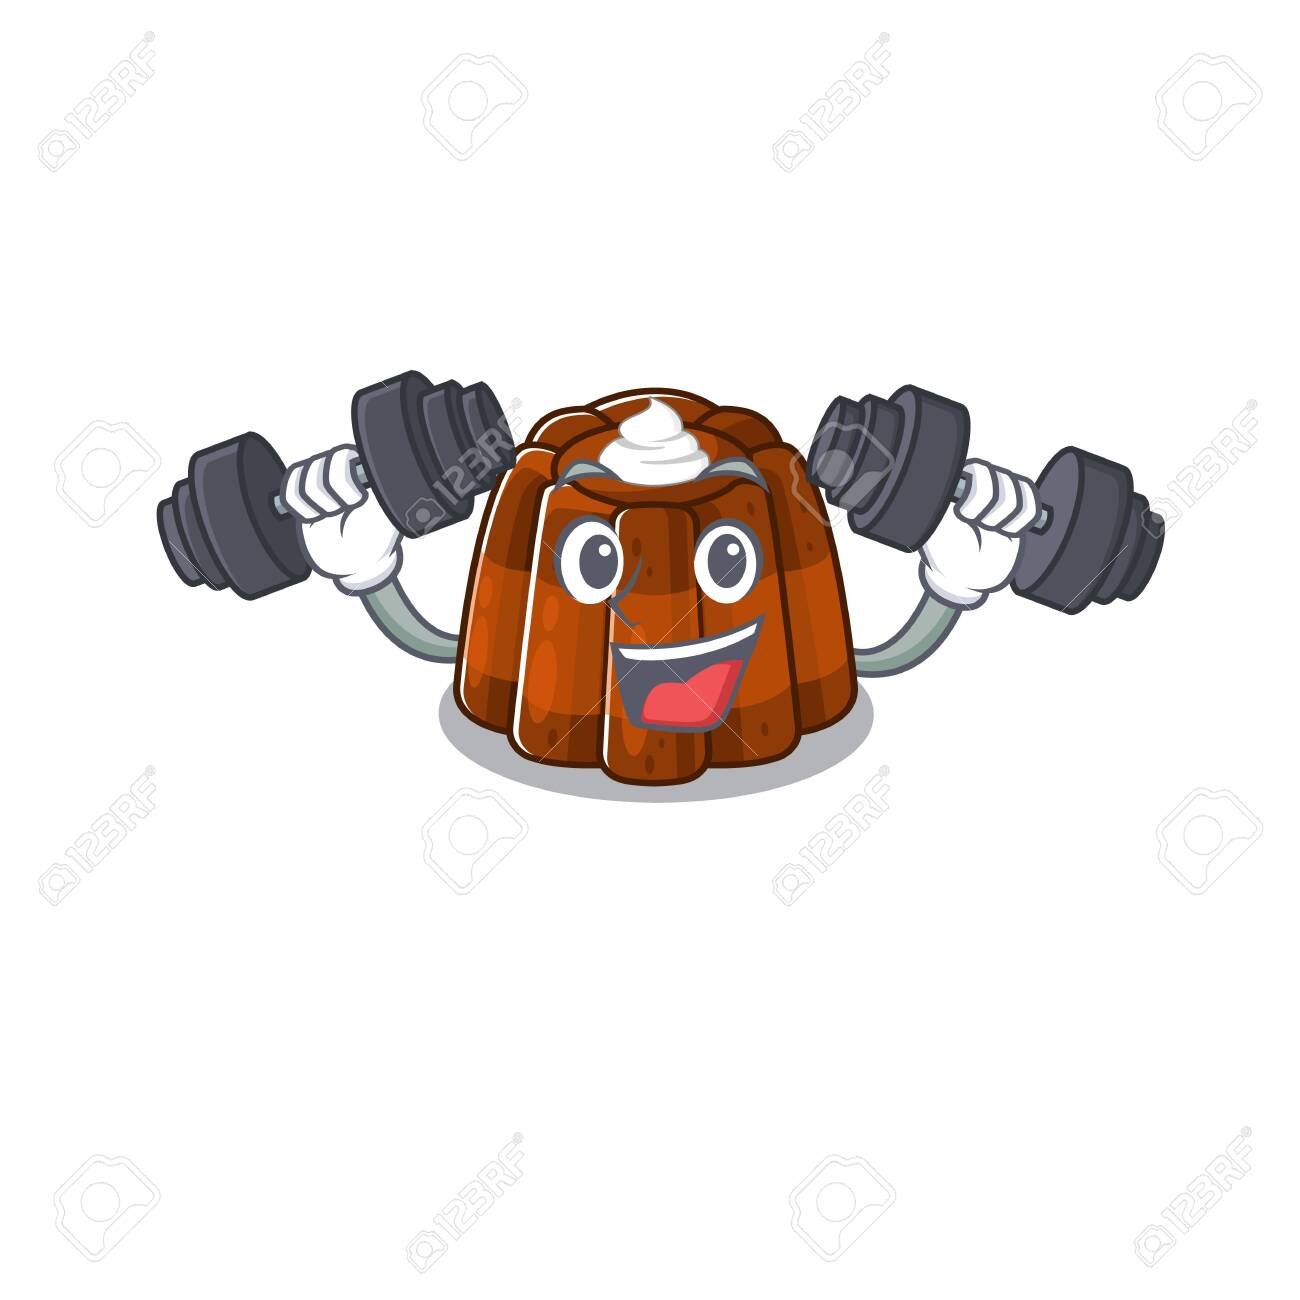 Sporty Fitness exercise chocolate pudding mascot design using barbells - 141544364